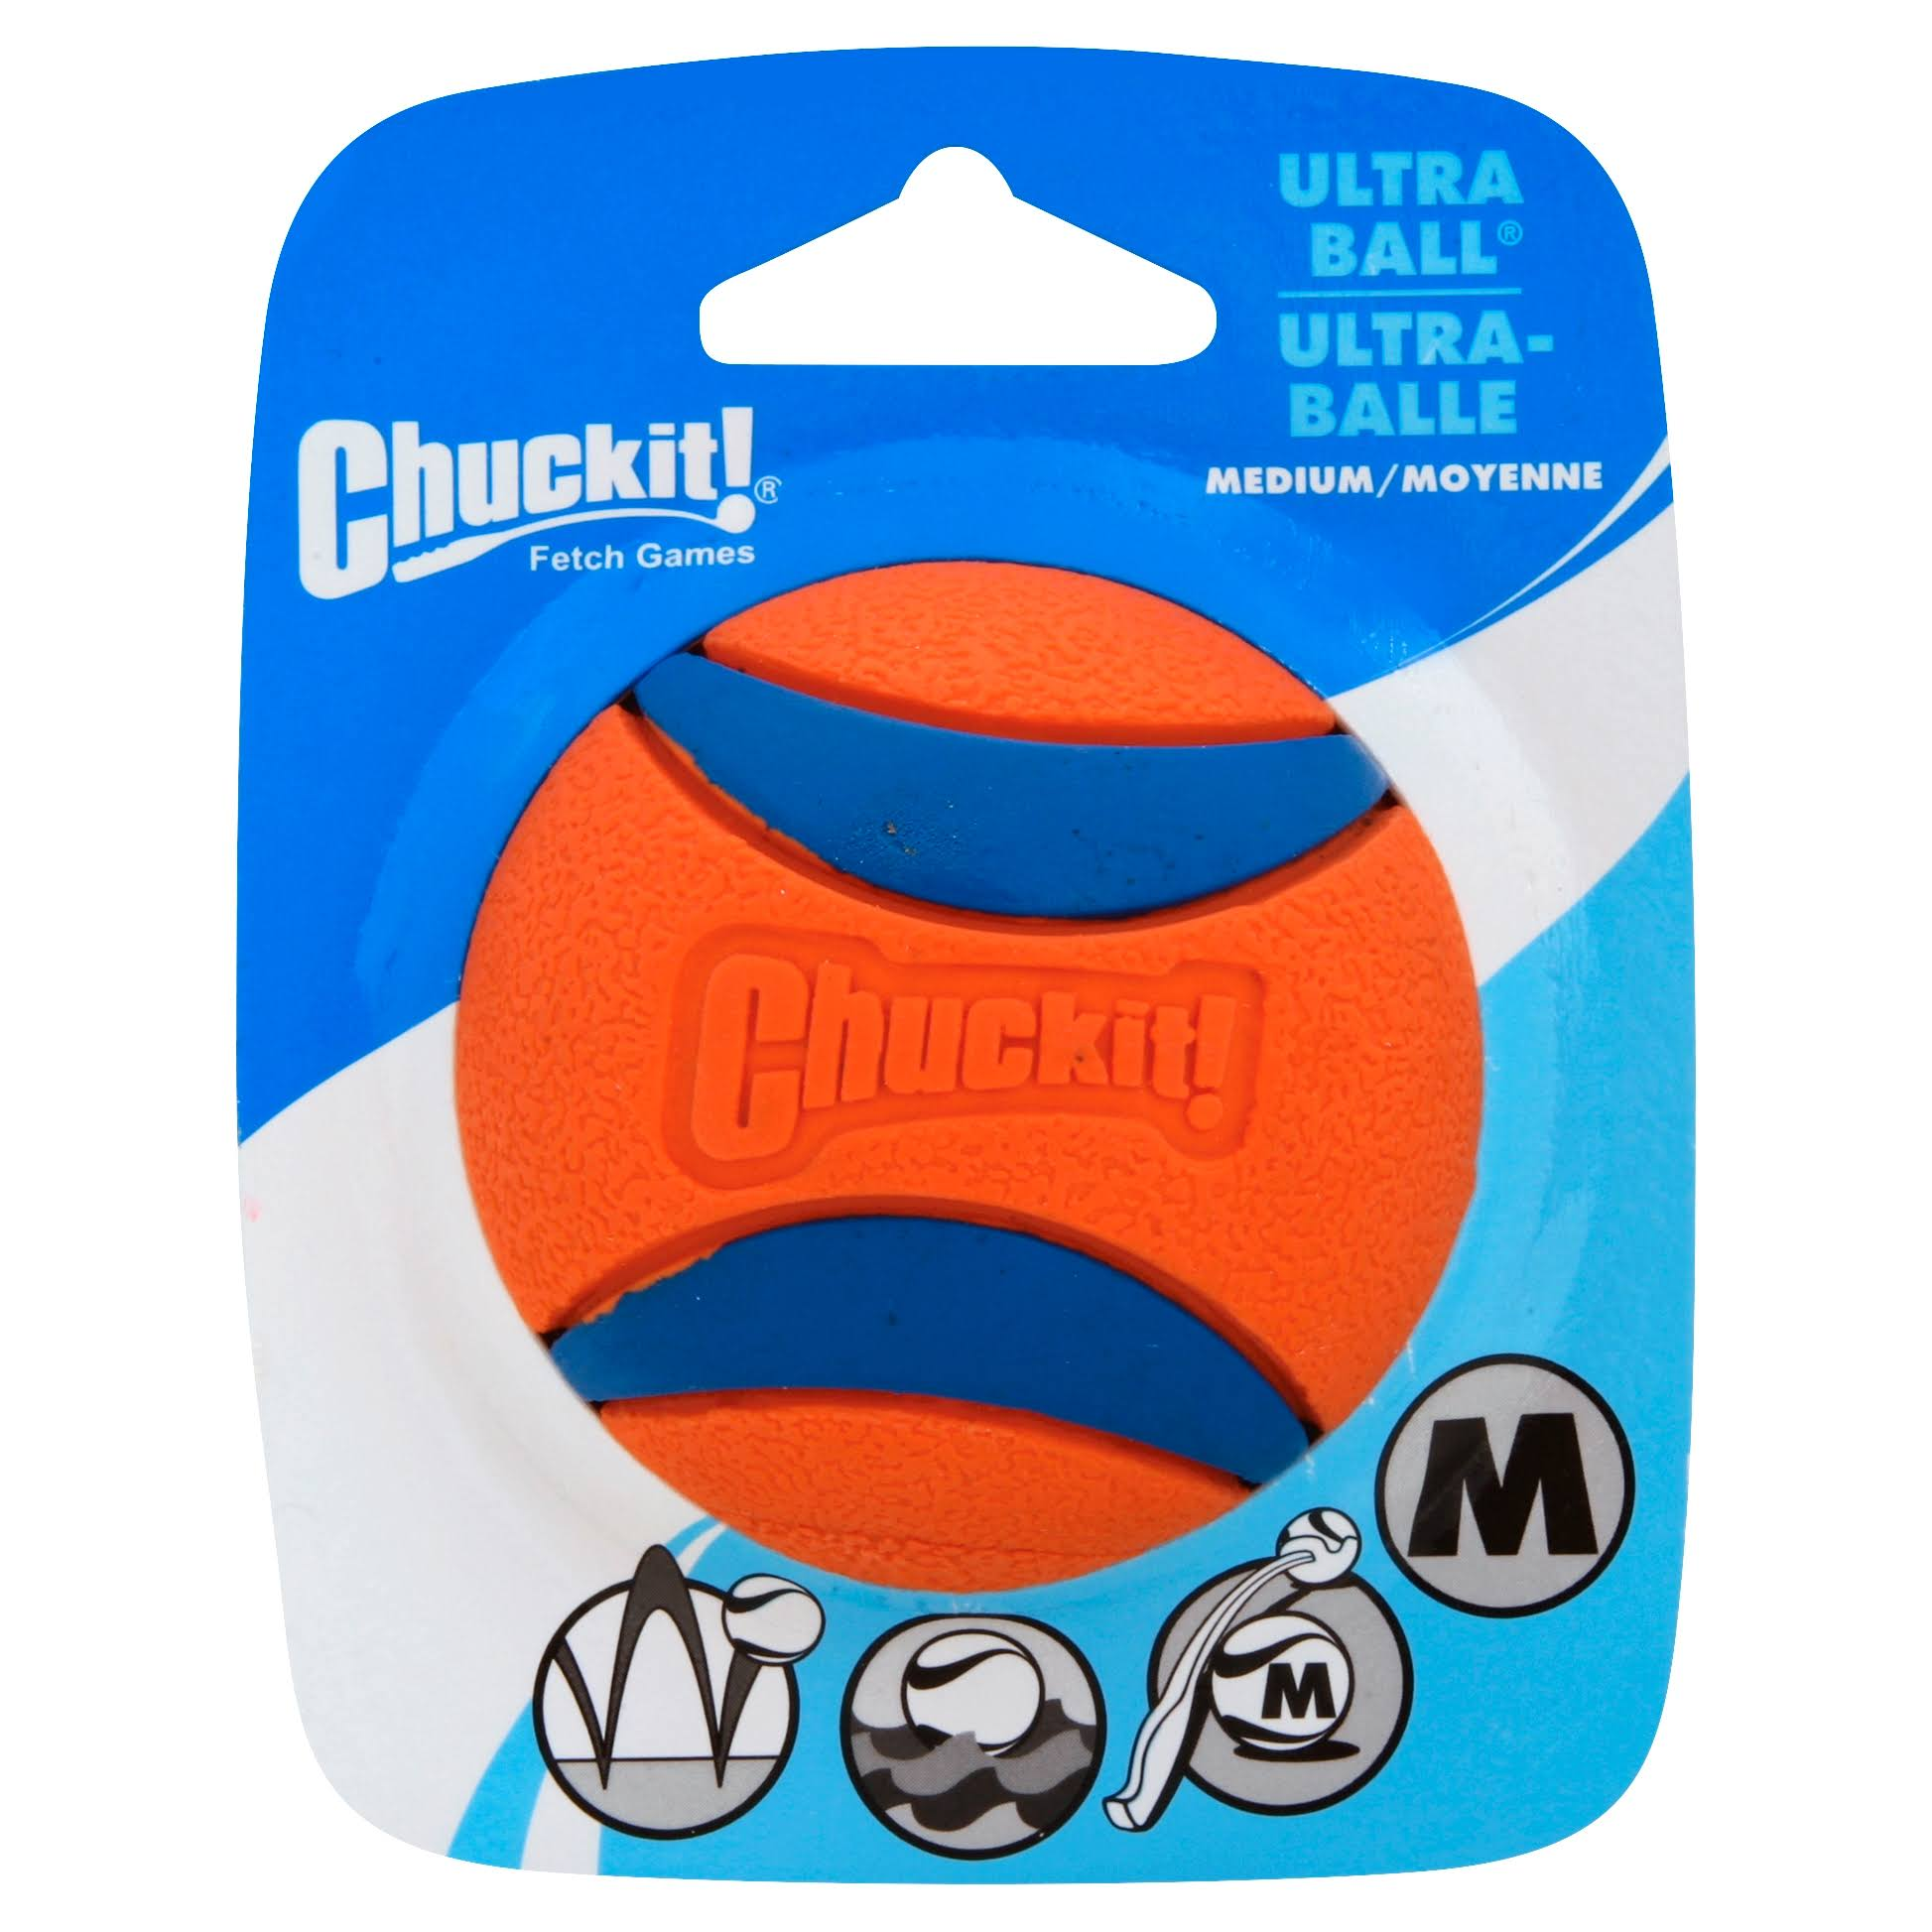 Chuckit Ultra Ball Dog Fetch Interactive Dog Toy - Medium